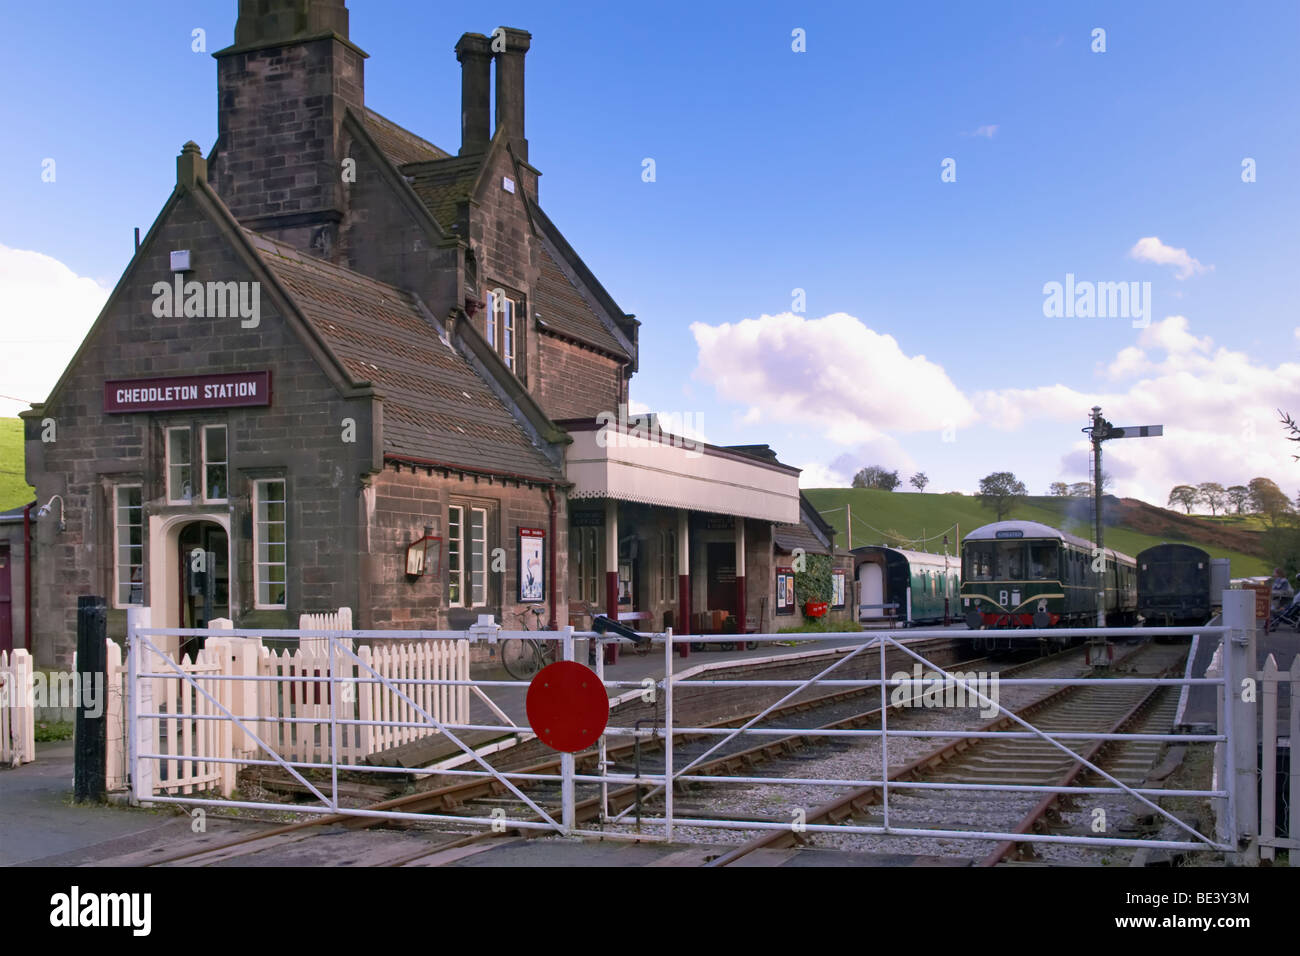 Railway crossing barriers at Cheddleton Station - Stock Image